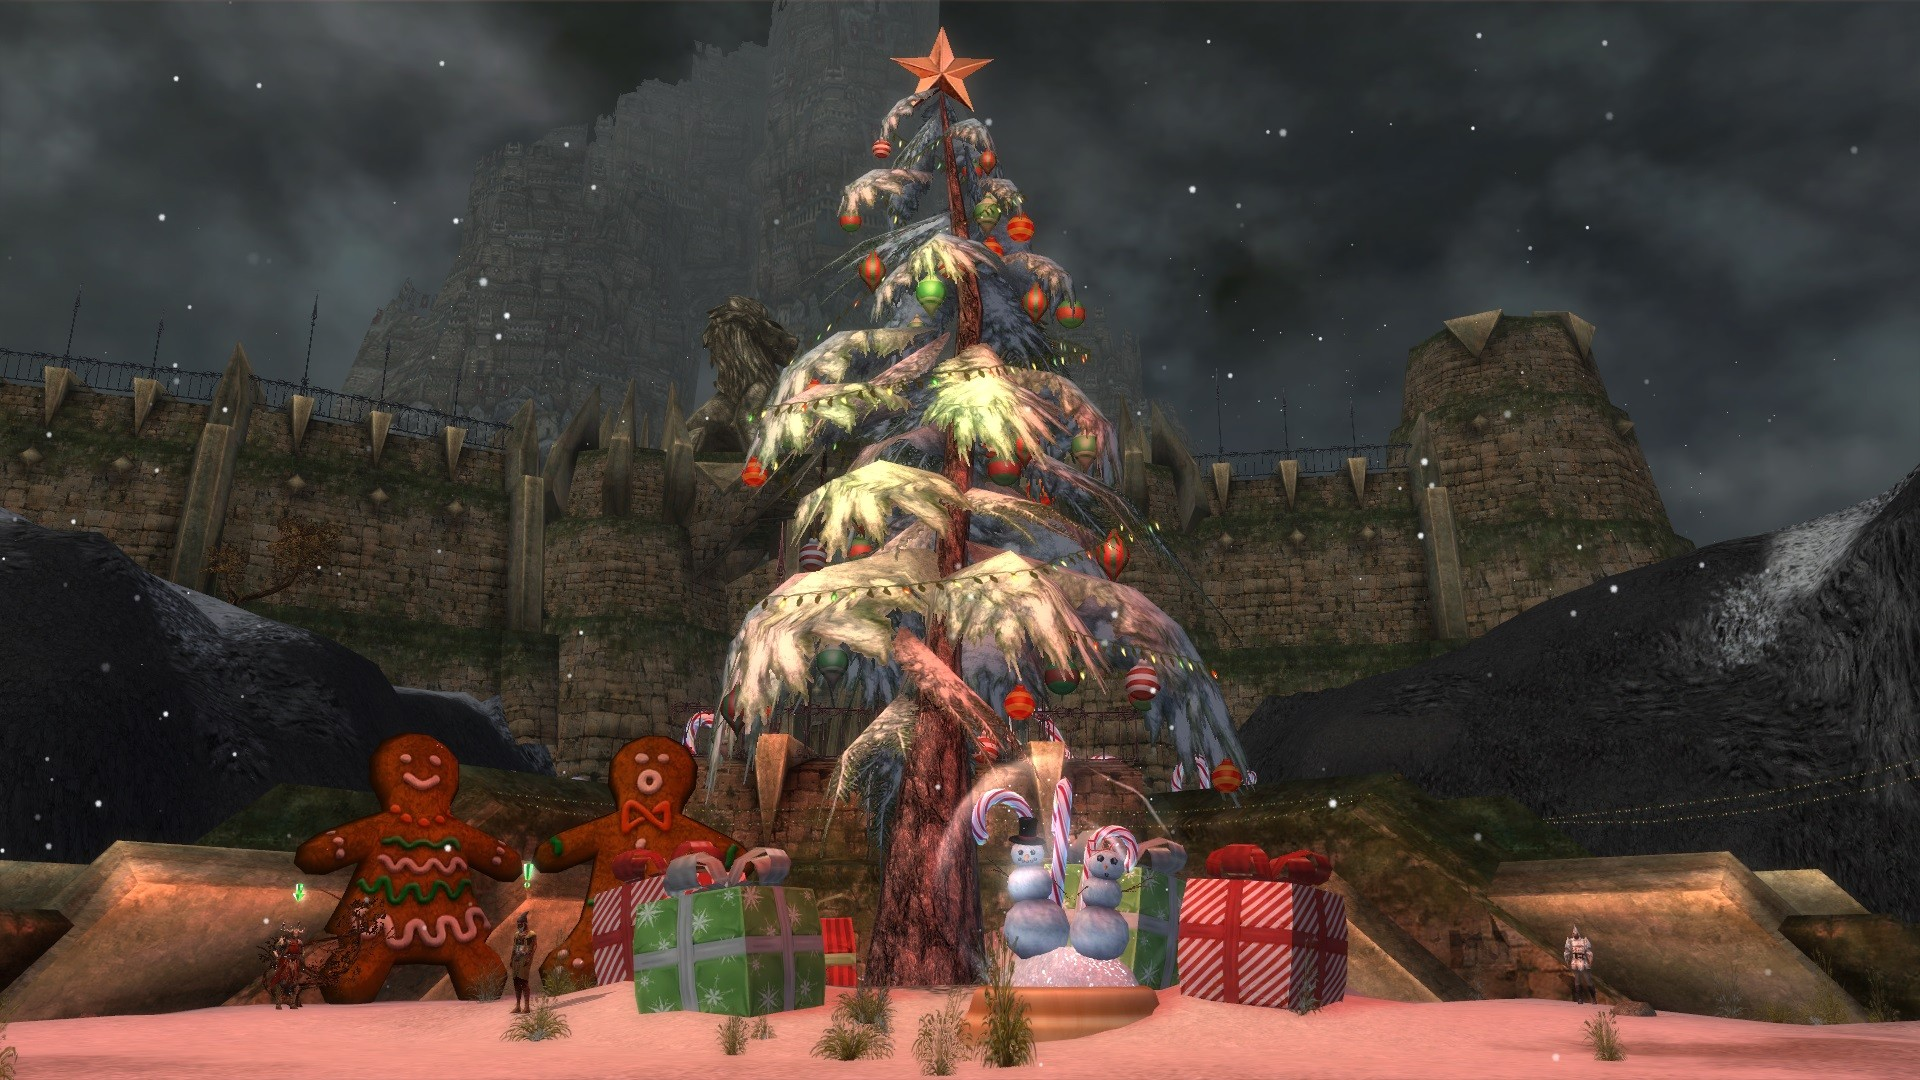 Guild Wars - Wintersday 2012 in Lion's Arch!